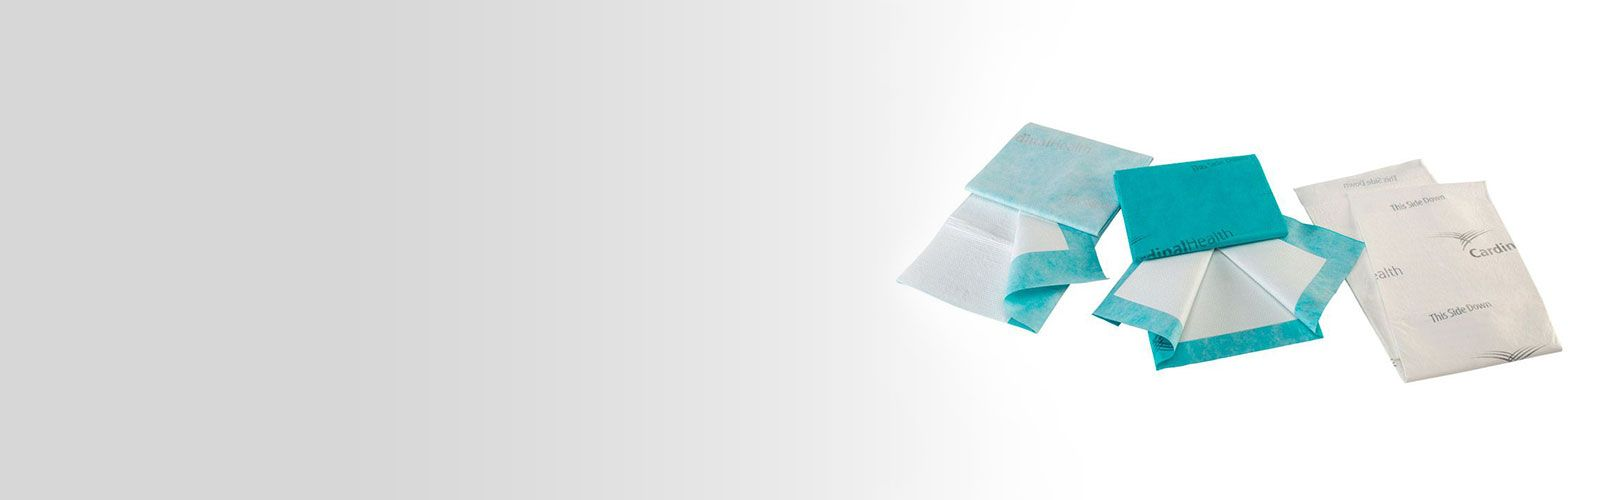 Incontinence underpad products.